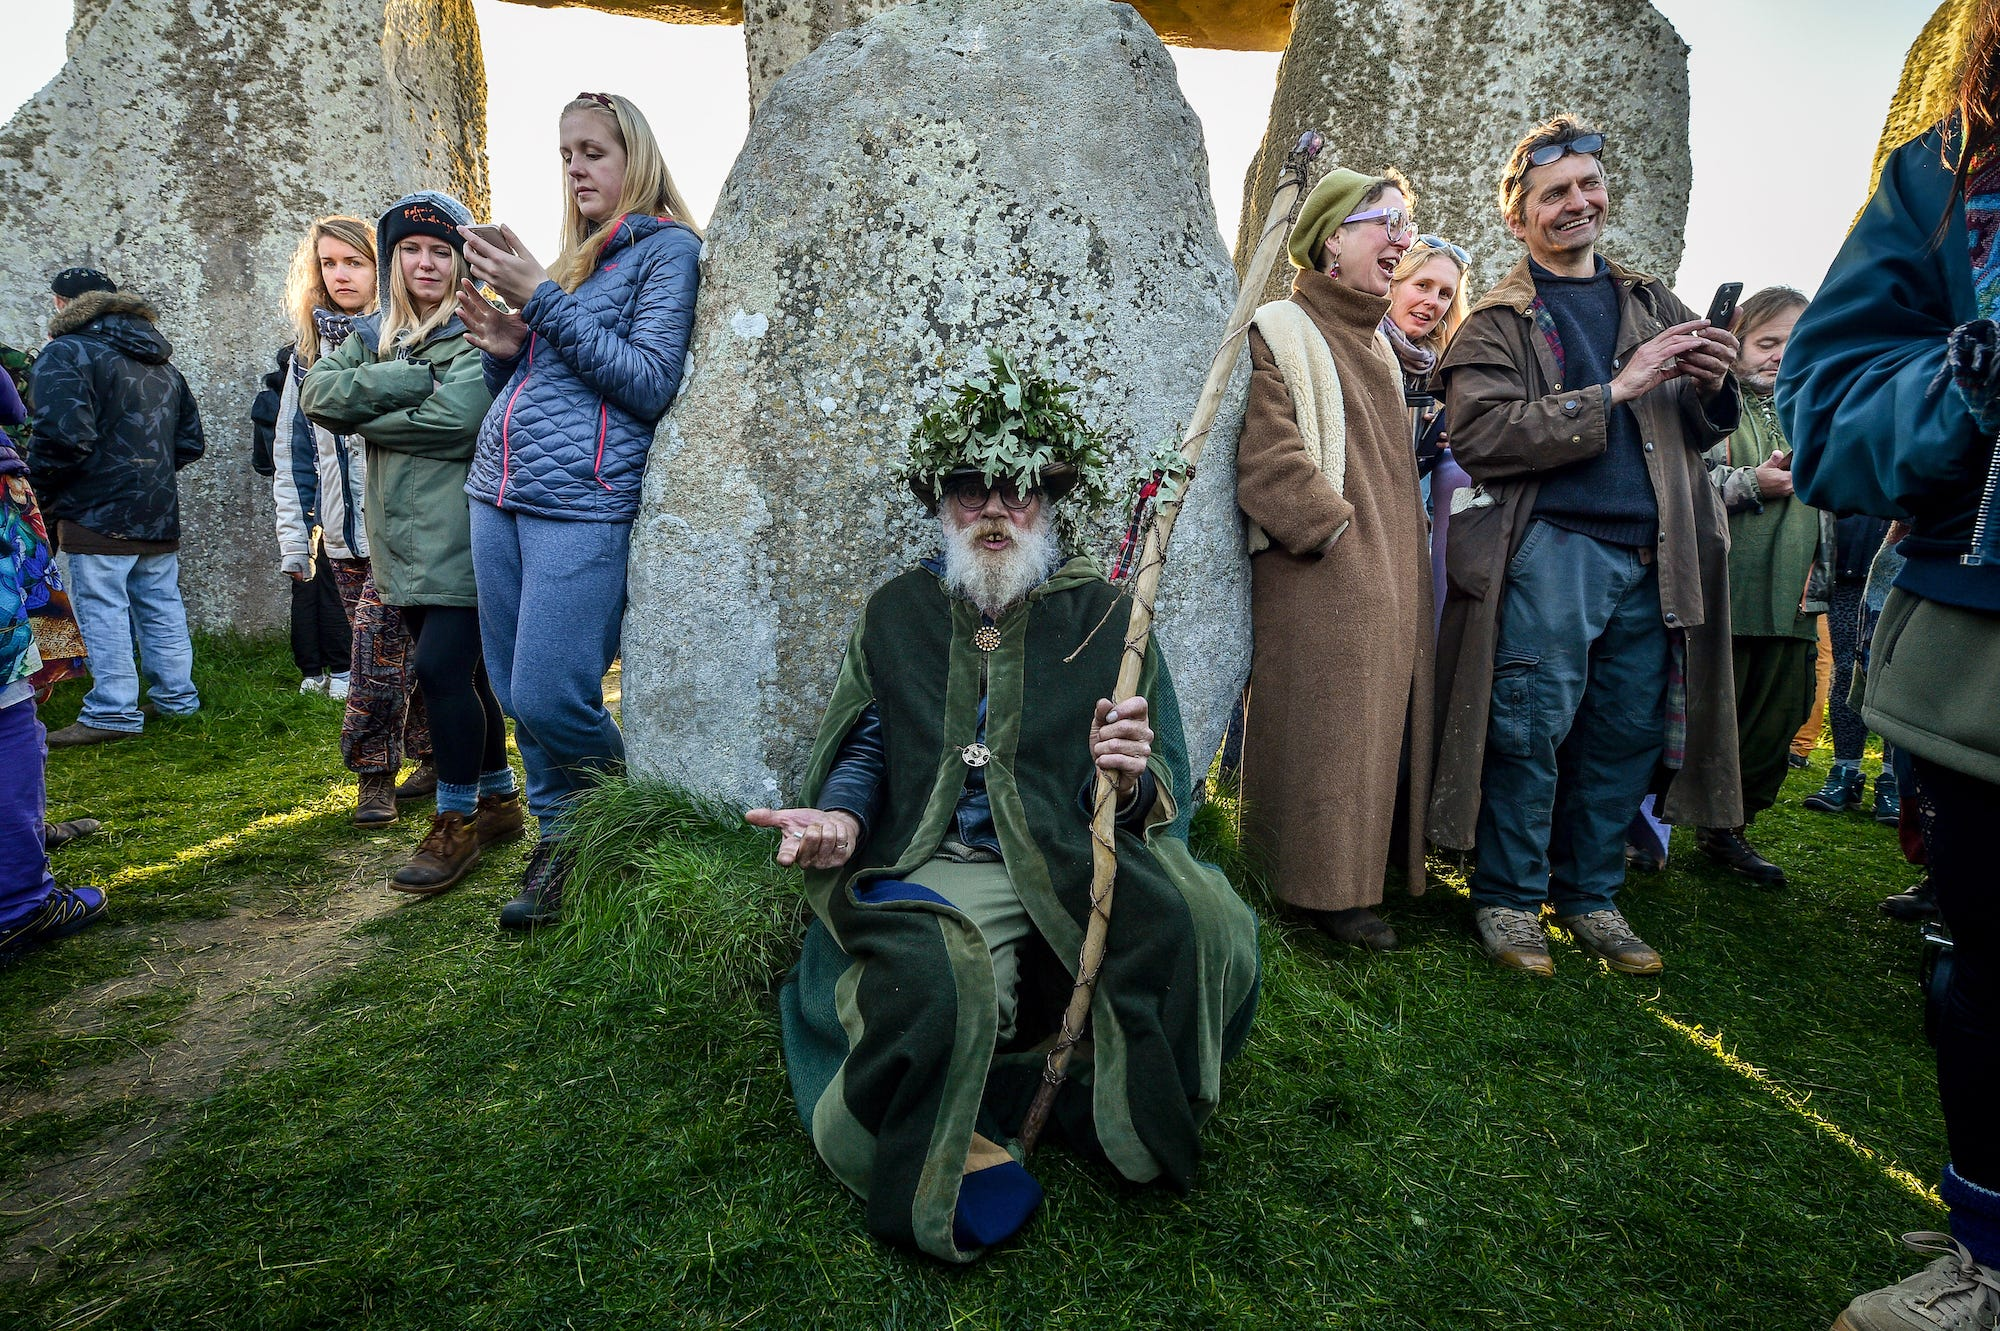 A druid rests in the stone circle at Stonehenge where people gather to celebrate the dawn of the longest day in the UK